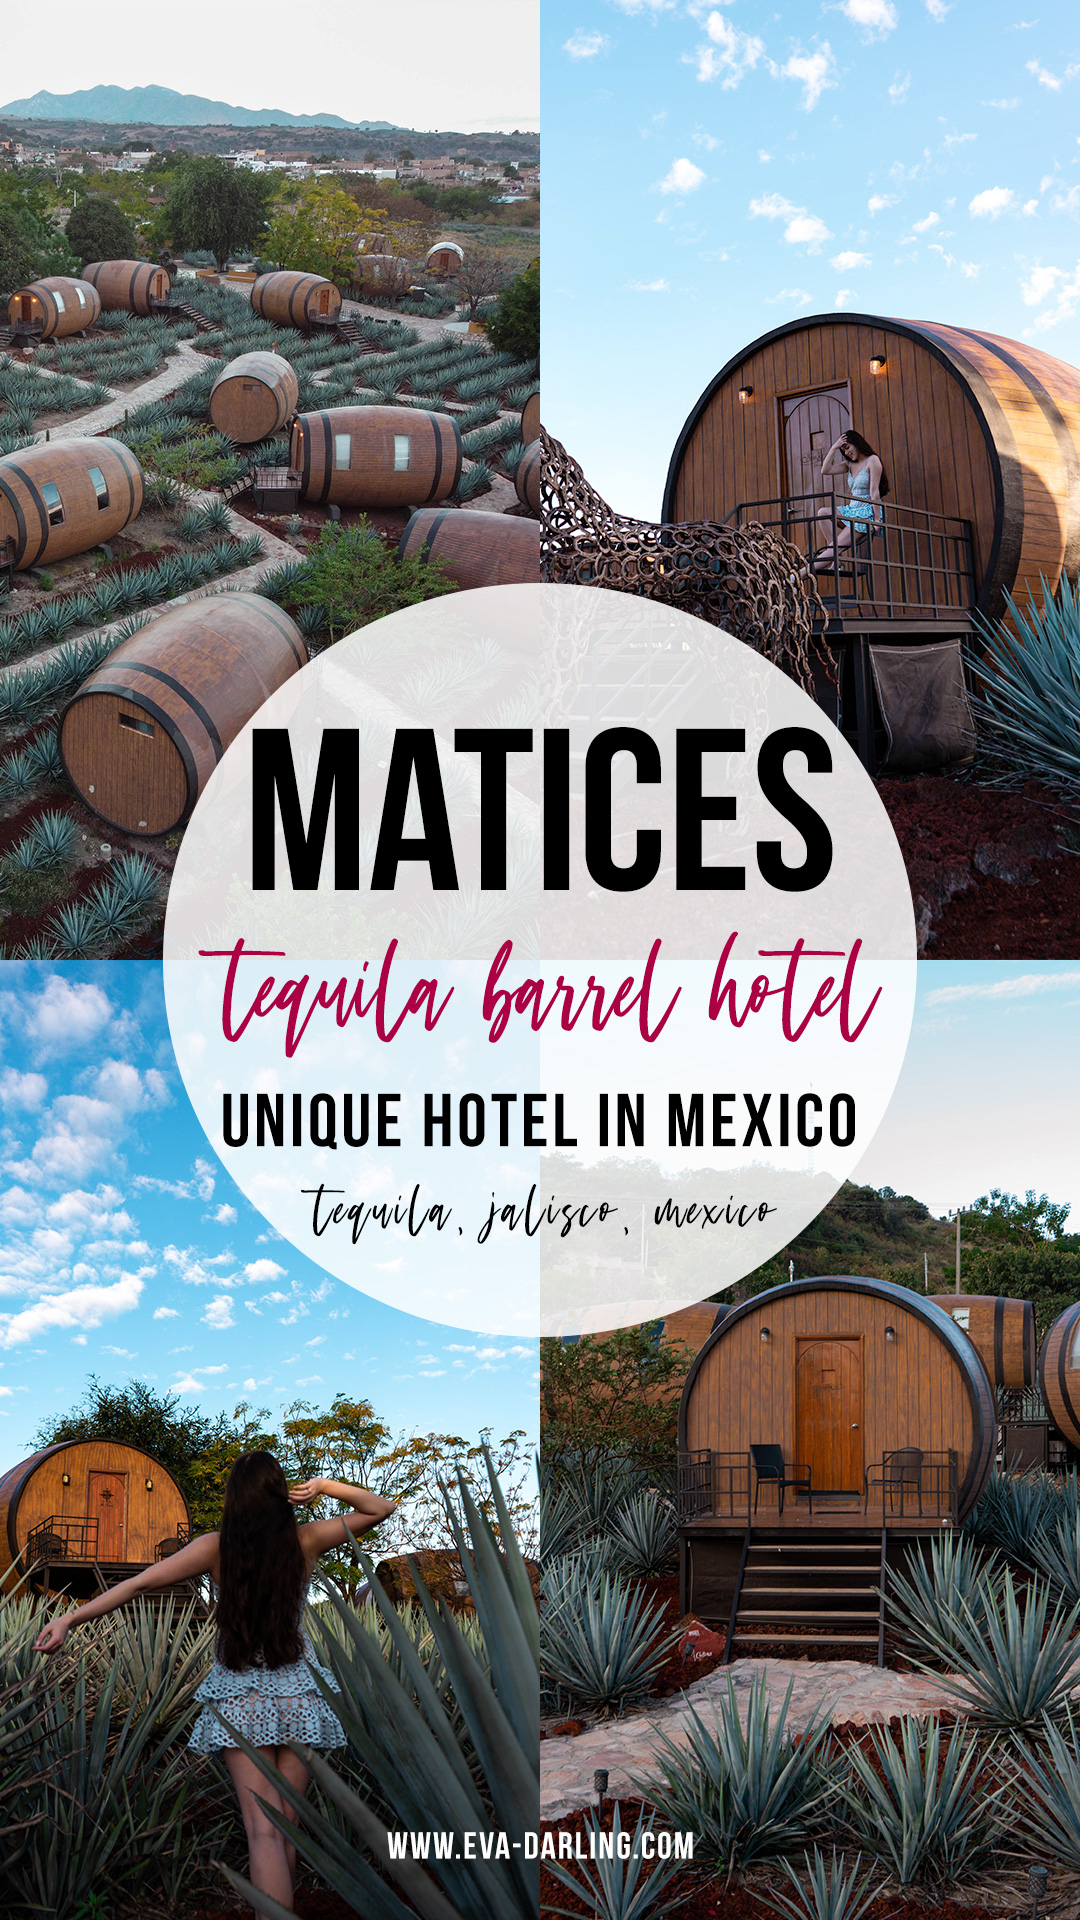 matices hotel de barricas tequila barrel room blue agave field unique luxury hotel instagrammable places to go in mexico hidden gem tequila jalisco